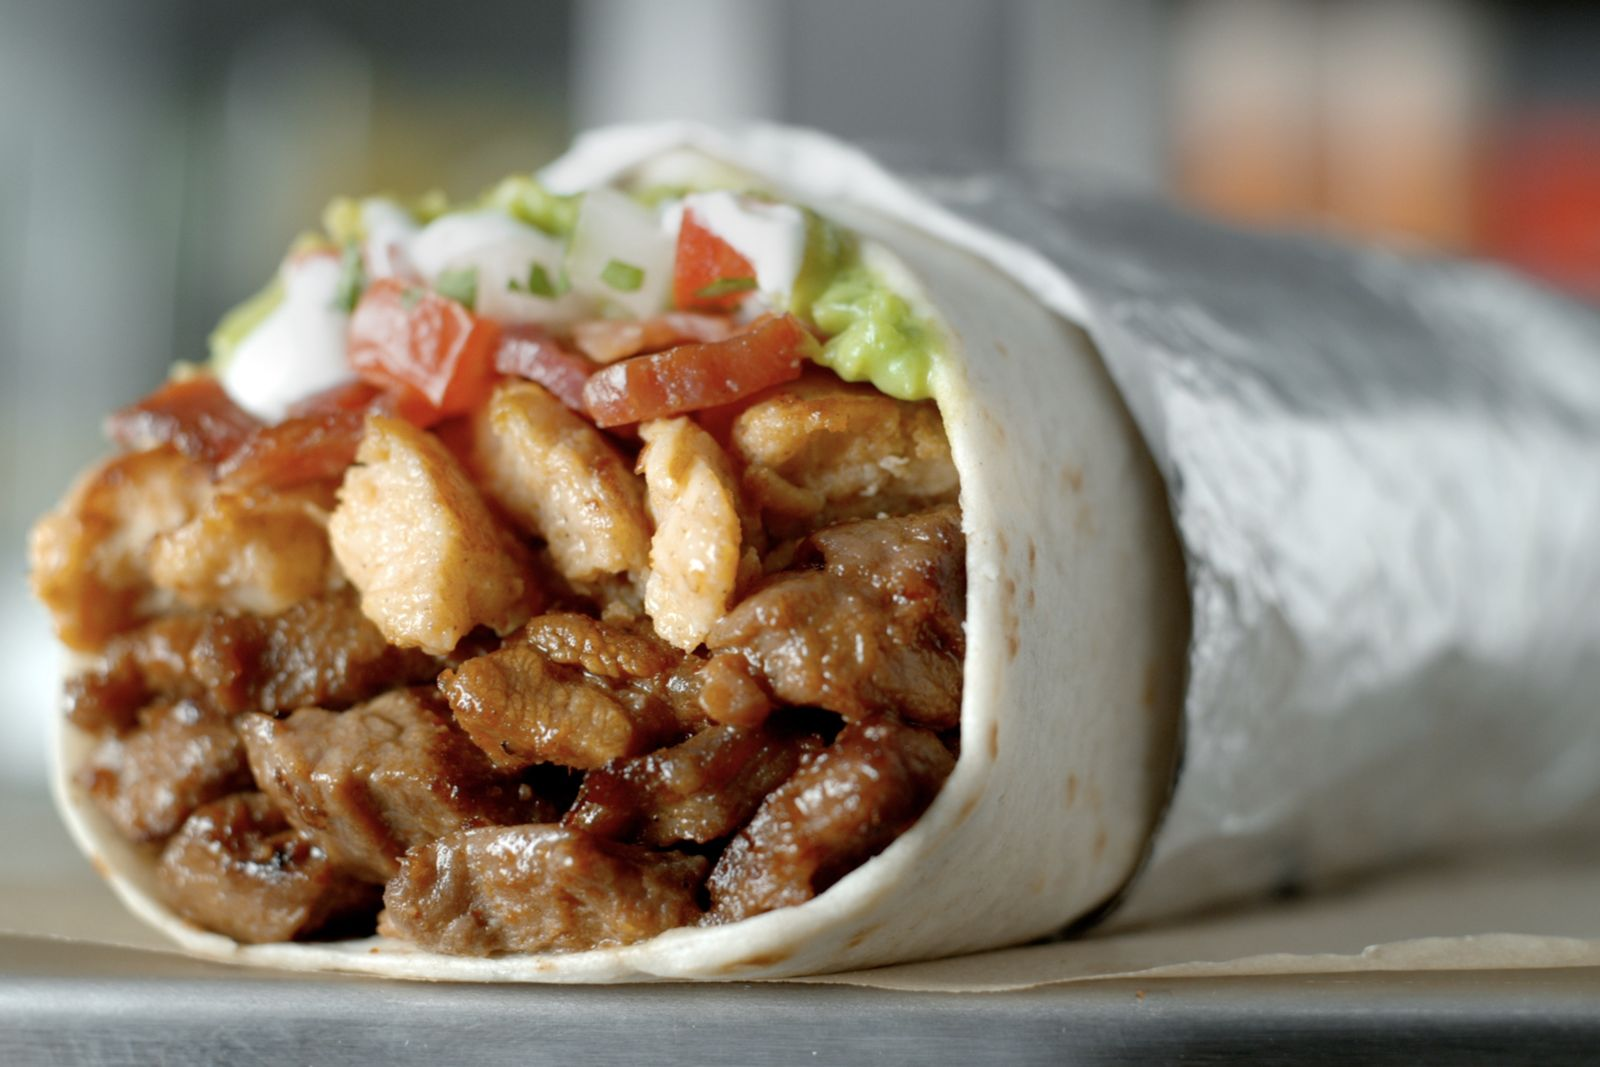 Del Taco Goes All In on Premium Meat With Its New Epic Triple Meat Burrito